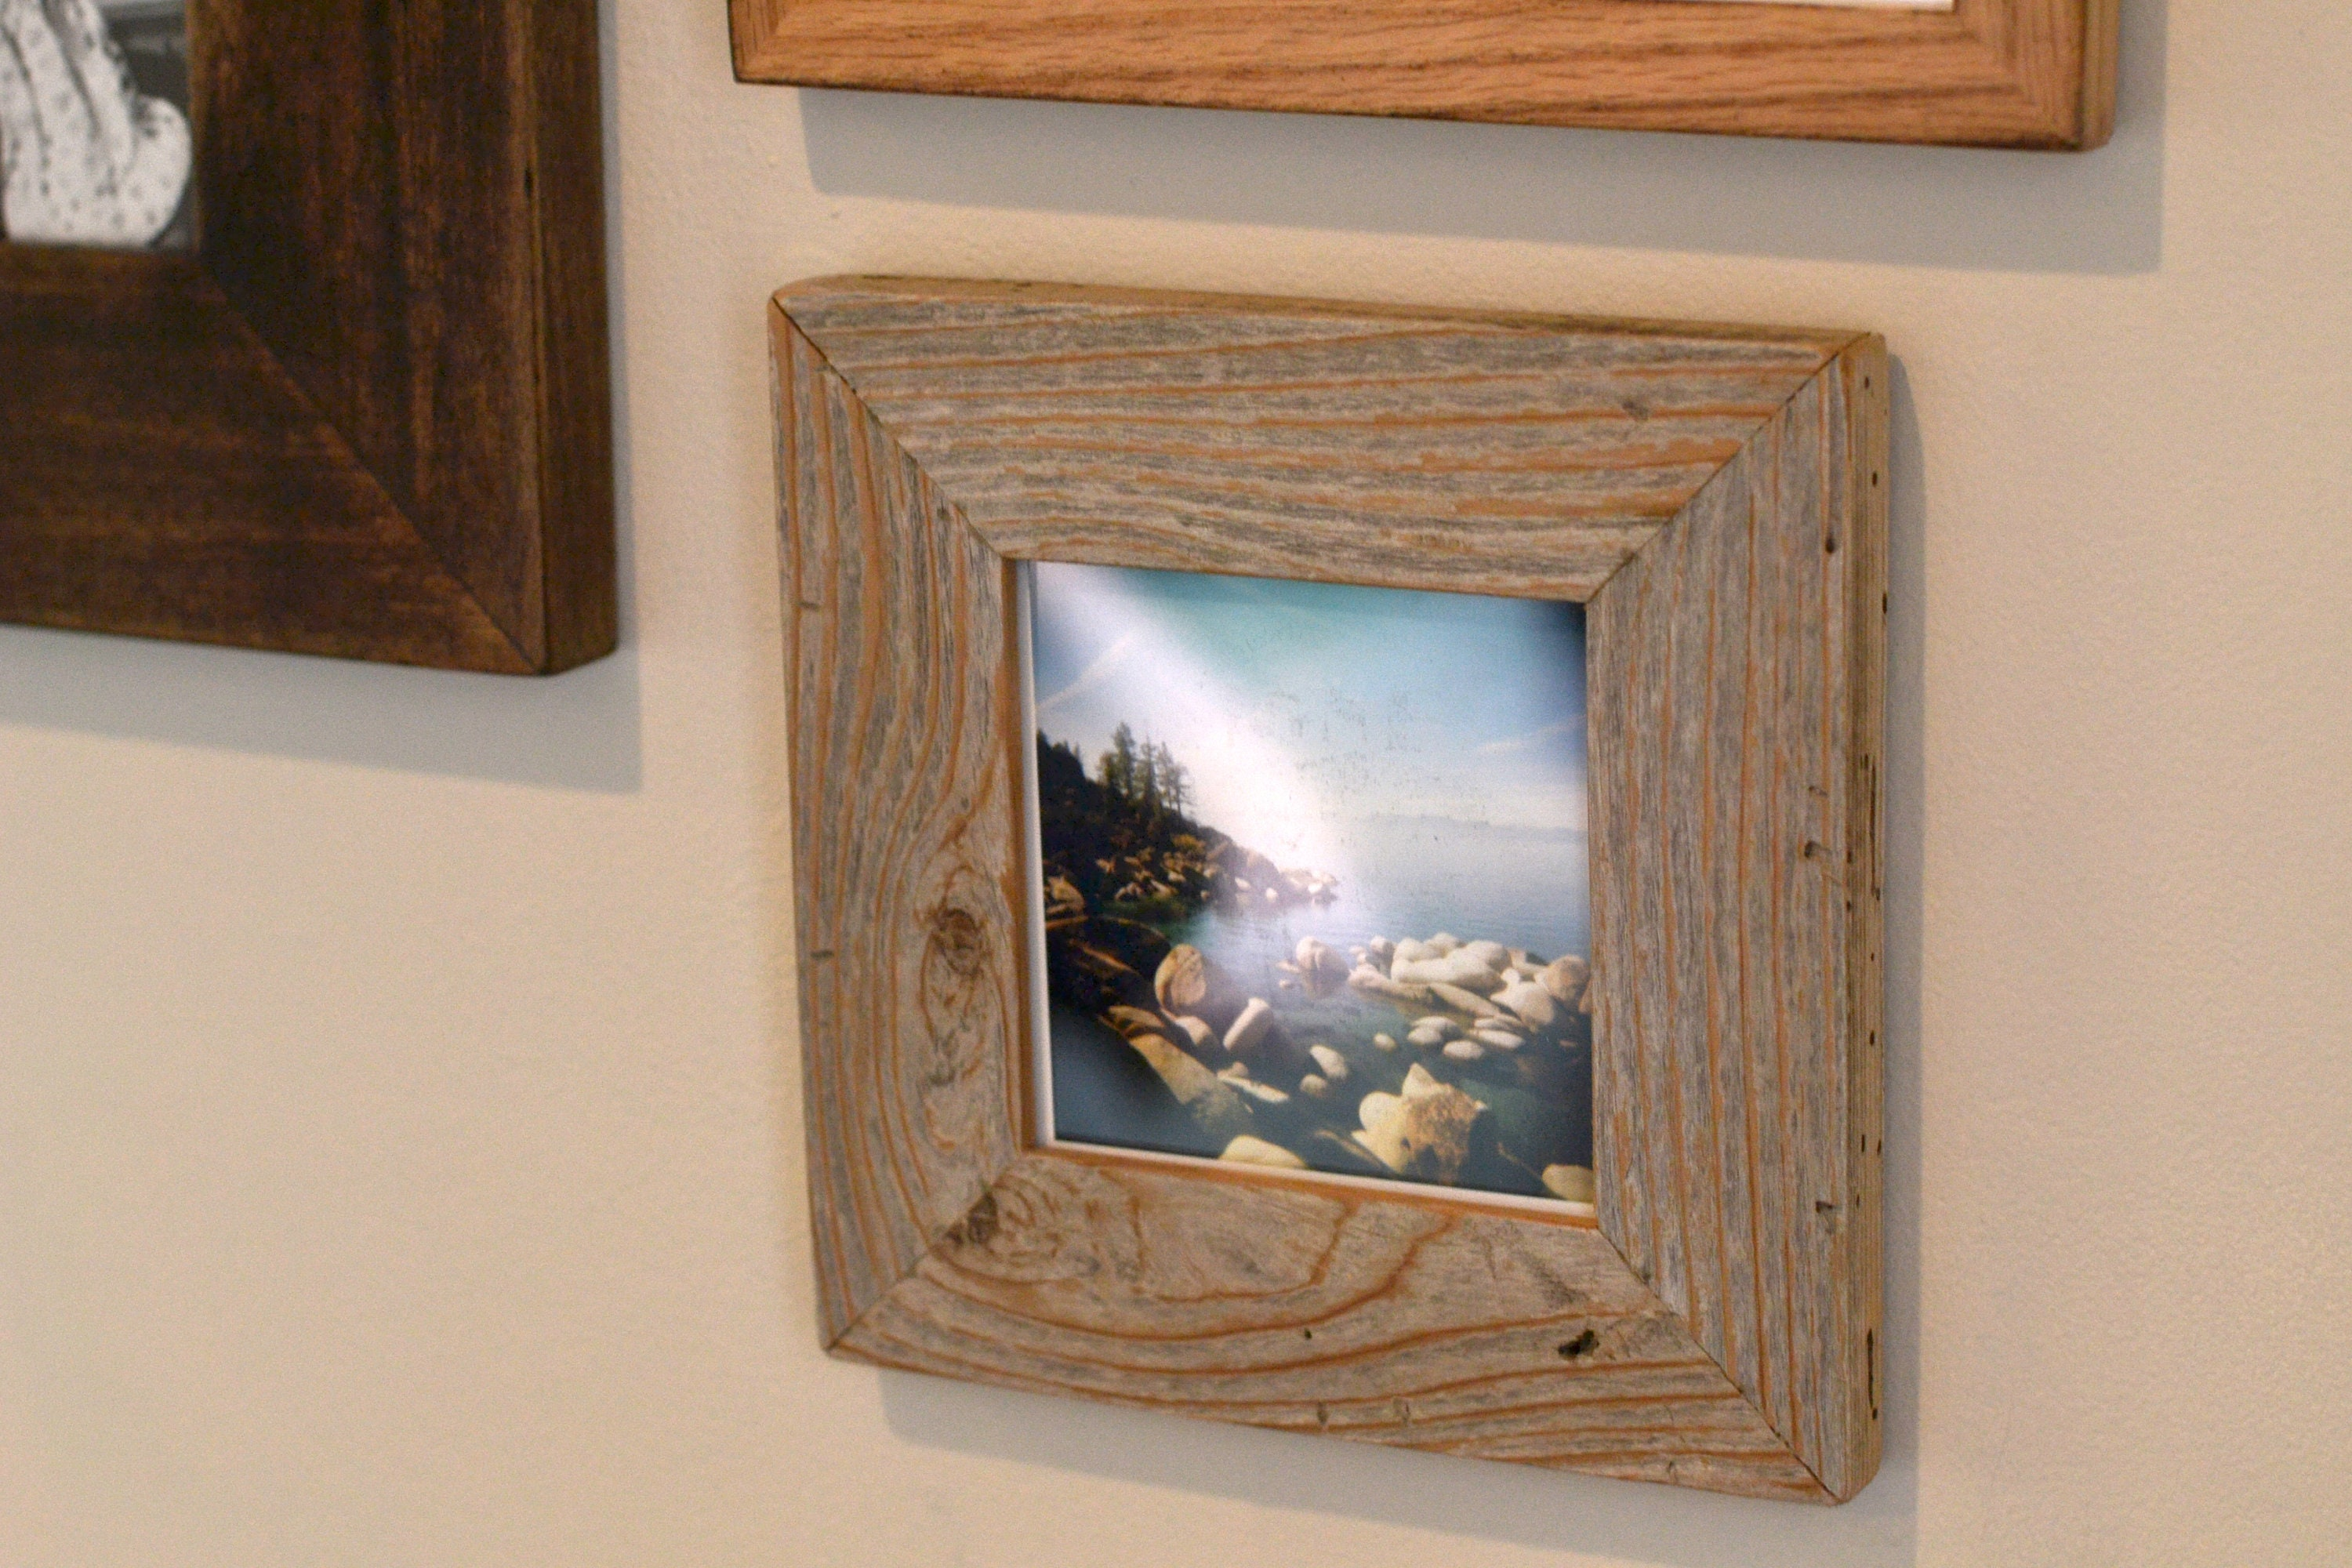 5x5 Picture Frame In 15 Wide Rustic Natural Reclaimed Cedar